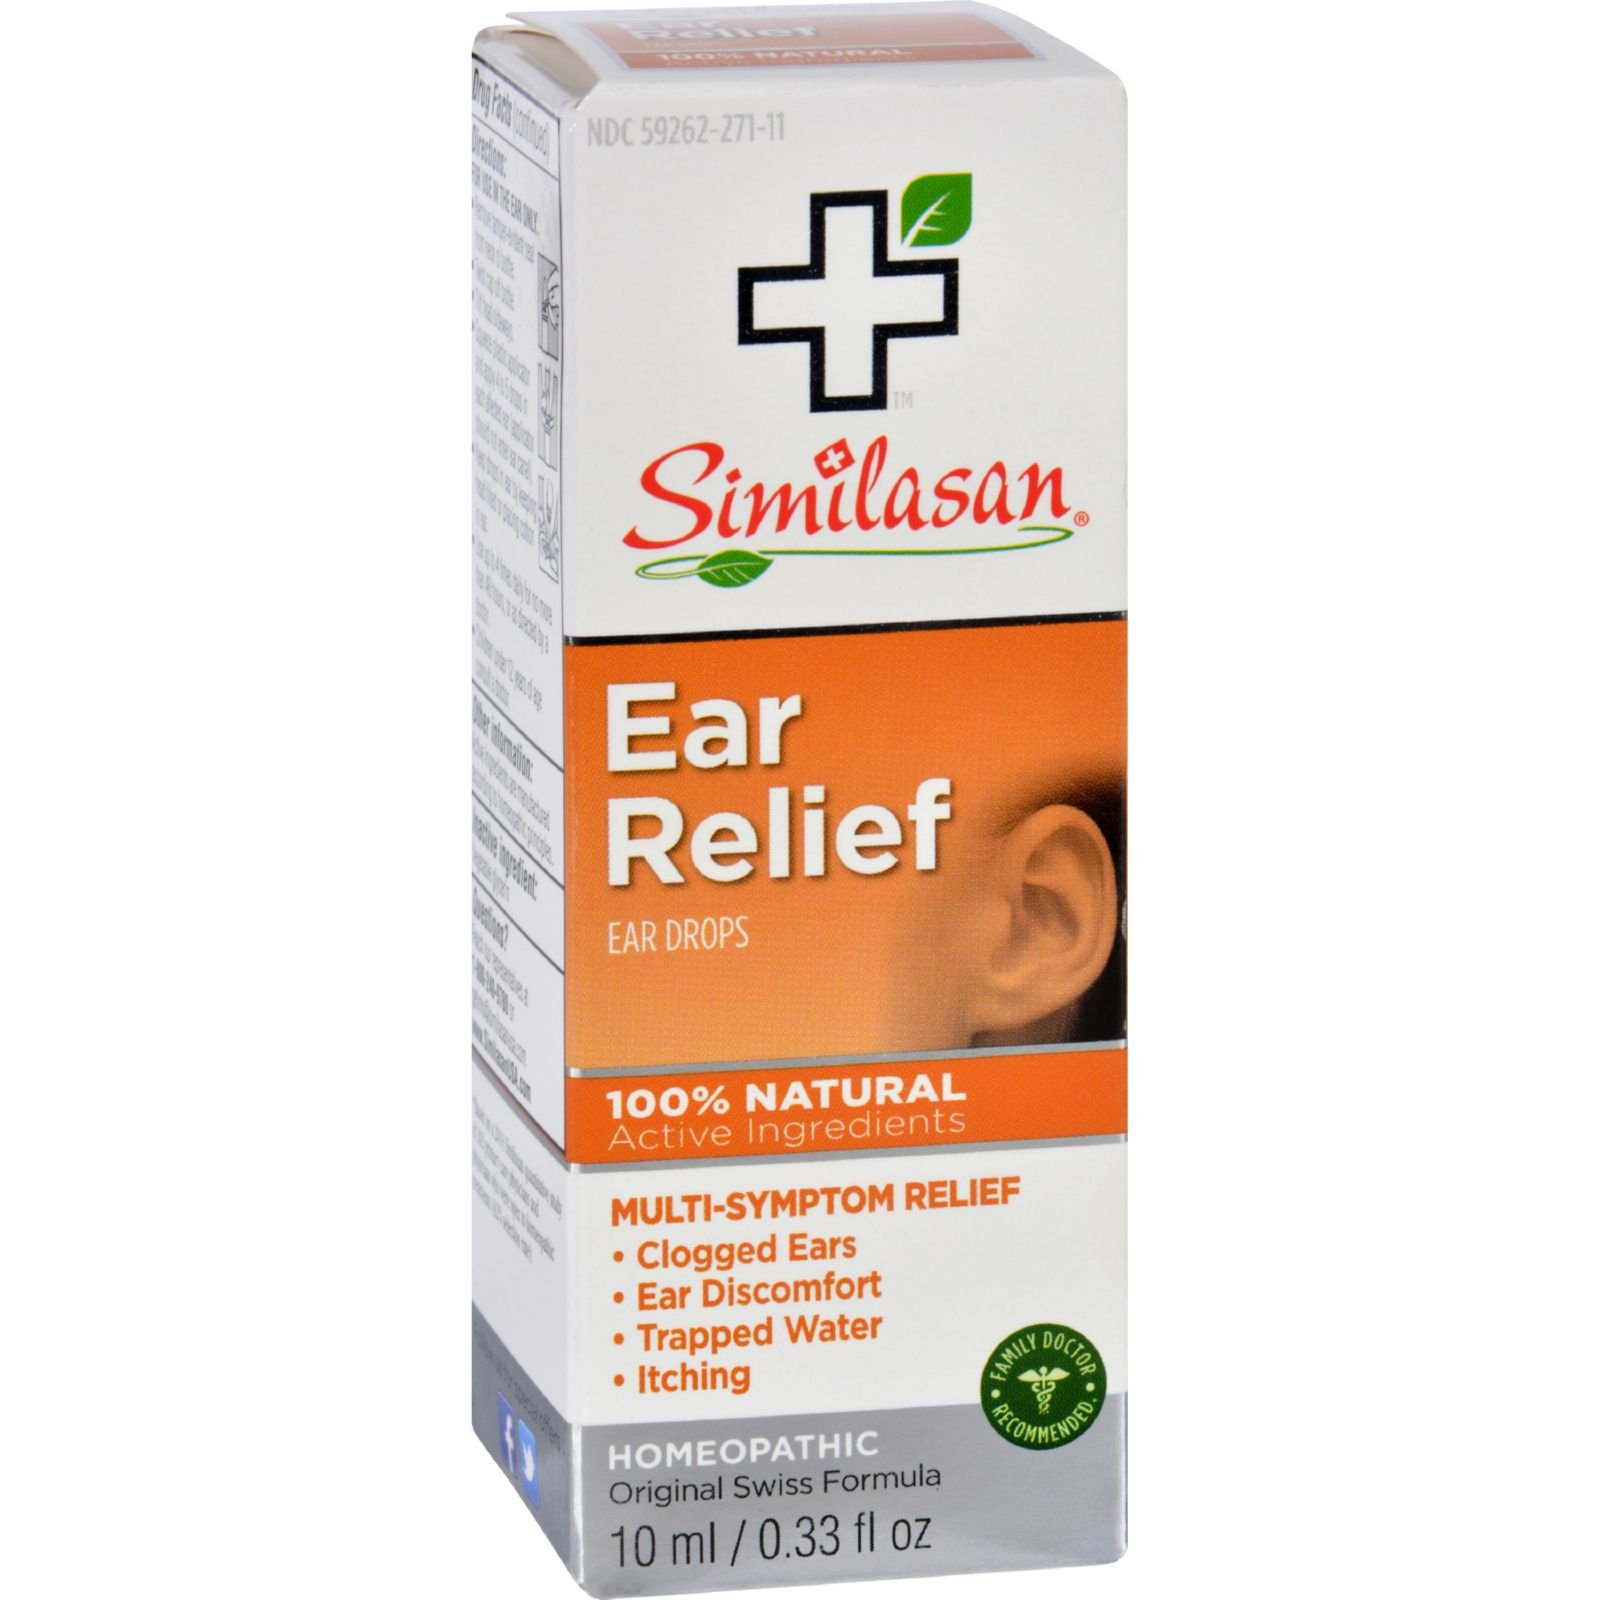 Similasan Ear Relief Ear Drops - Natural - Clogged Ear - Ear Discomfort - Trapped Water - Itching - 10 ml (Pack of 2)